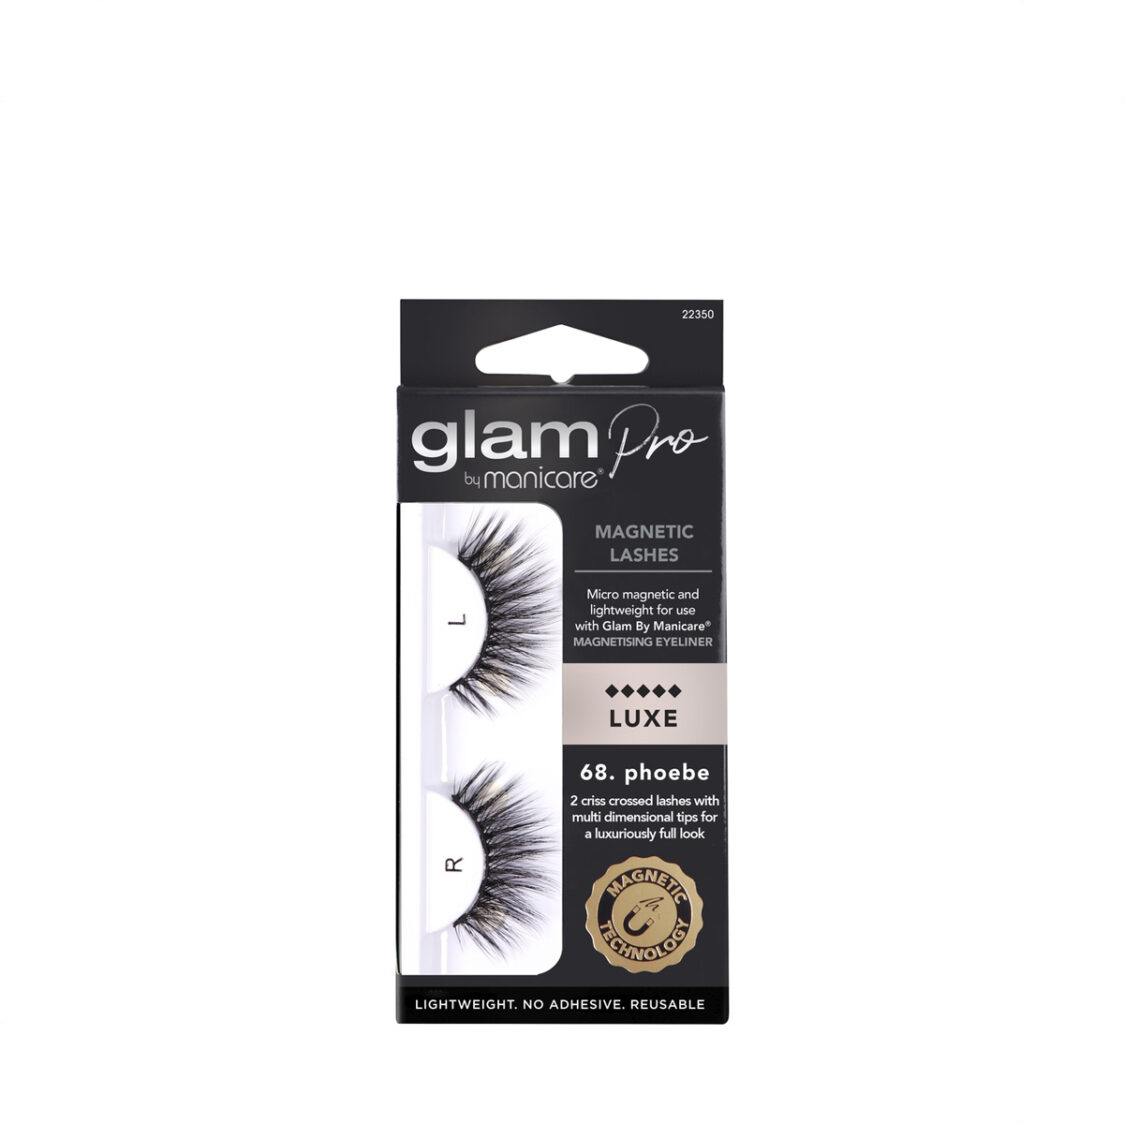 Manicare Glam Pro 68 Phoebe Magnetic Lashes Luxe